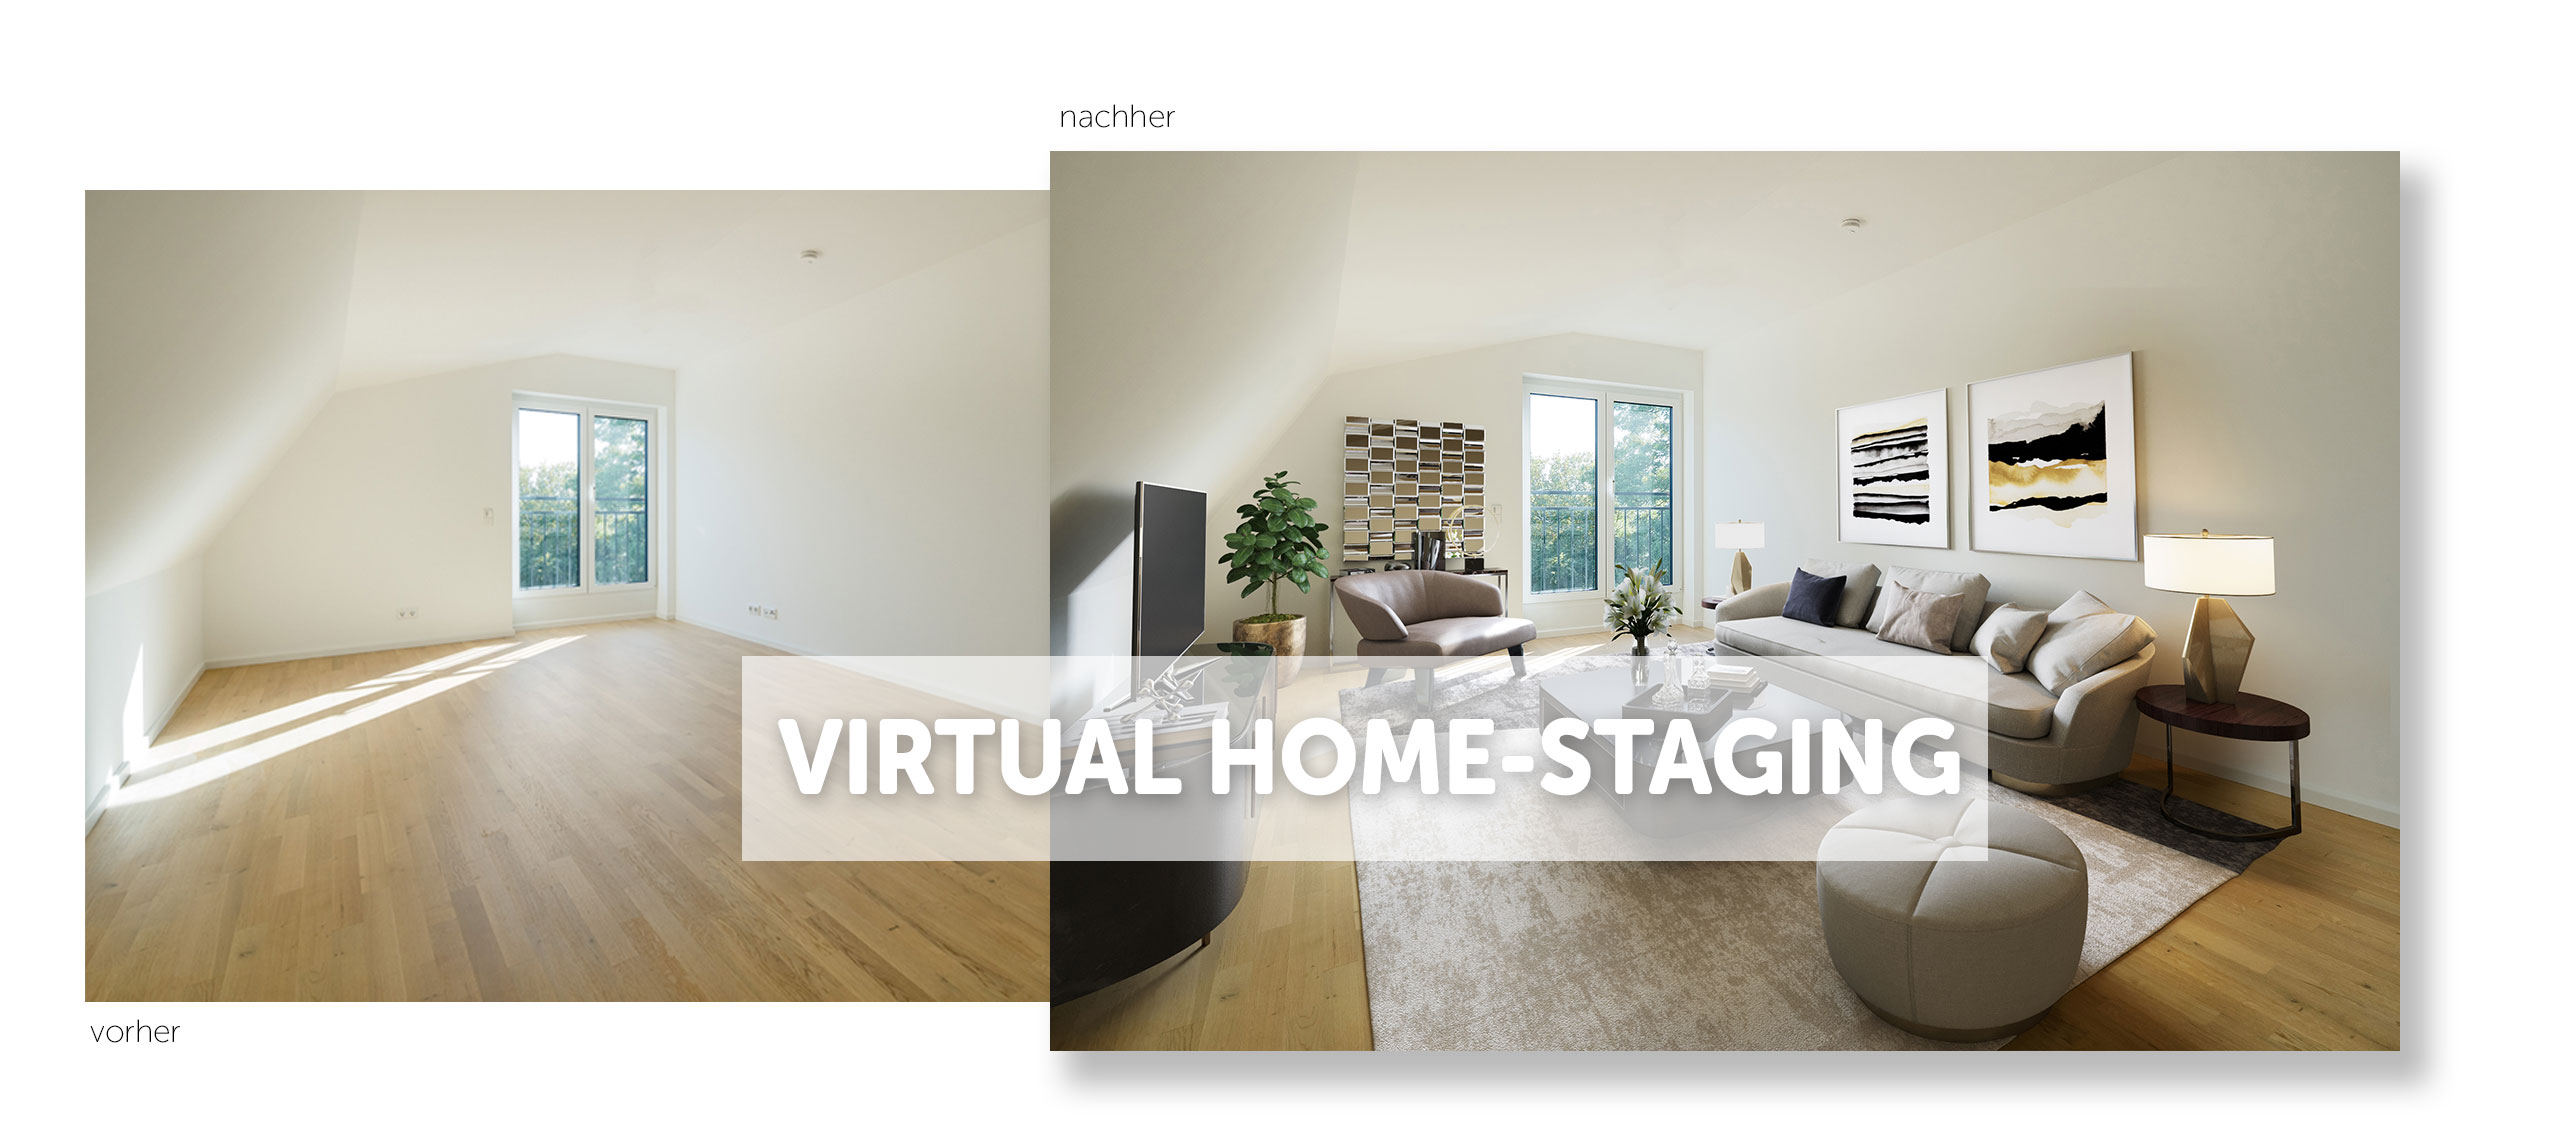 Virtual Home-Staging ©Offenblende